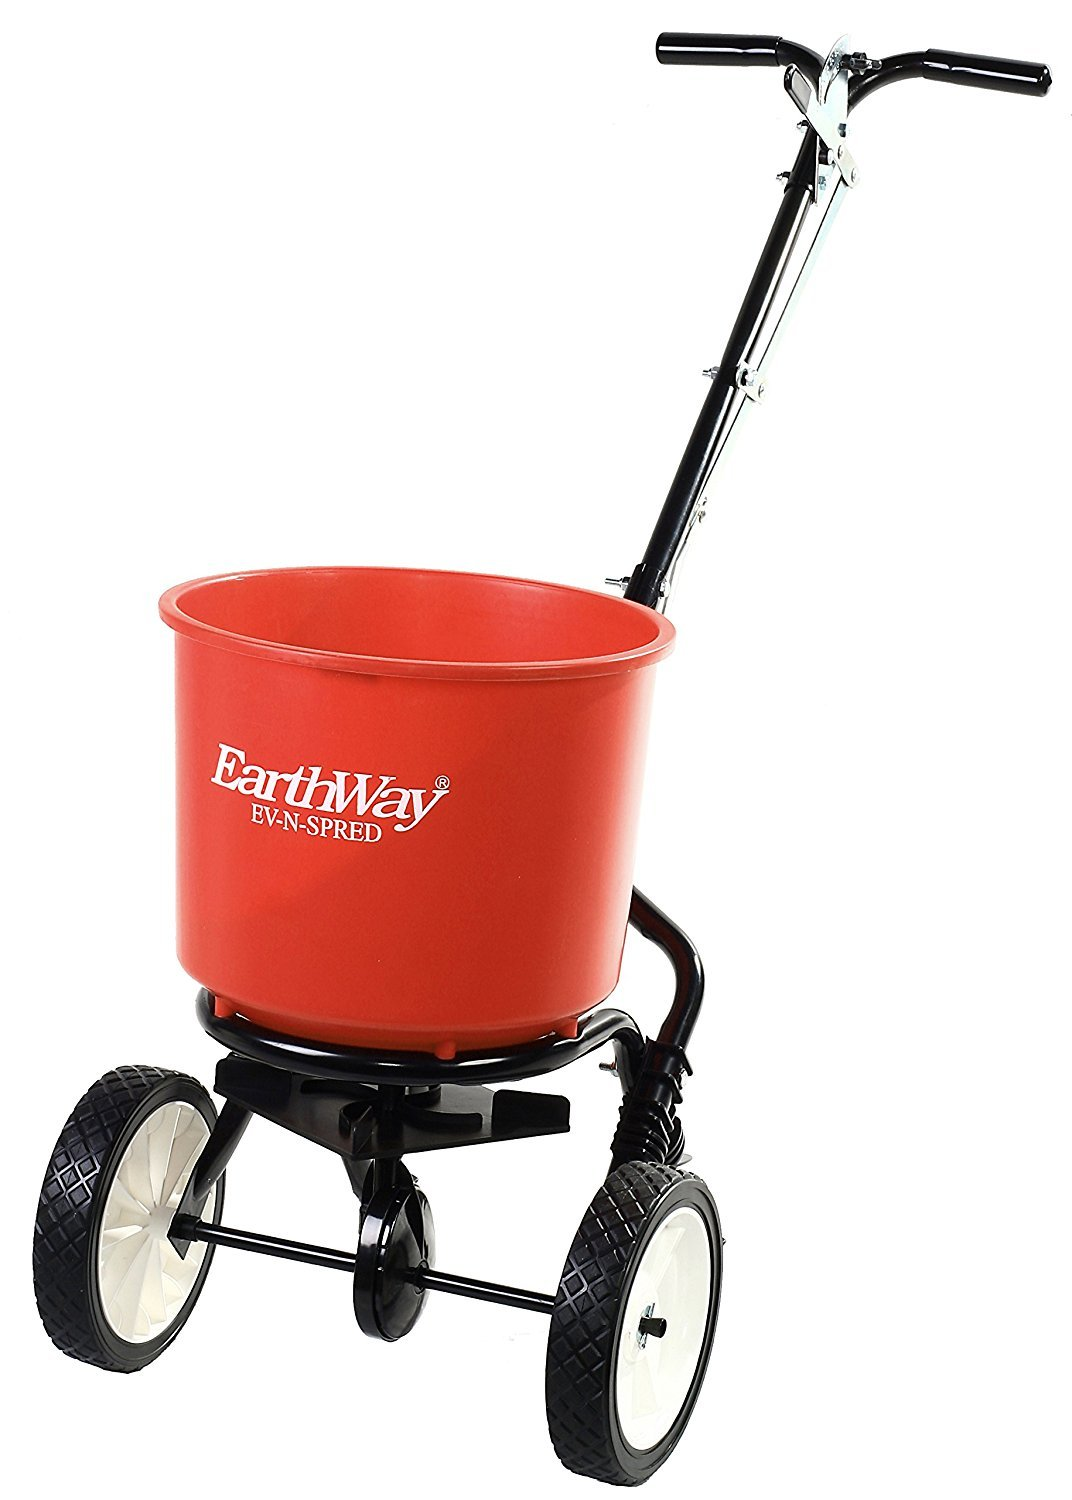 Earthway 40 lb. Estate Broadcast Spreader, Garden Seeder, Salt Spreader BC198226